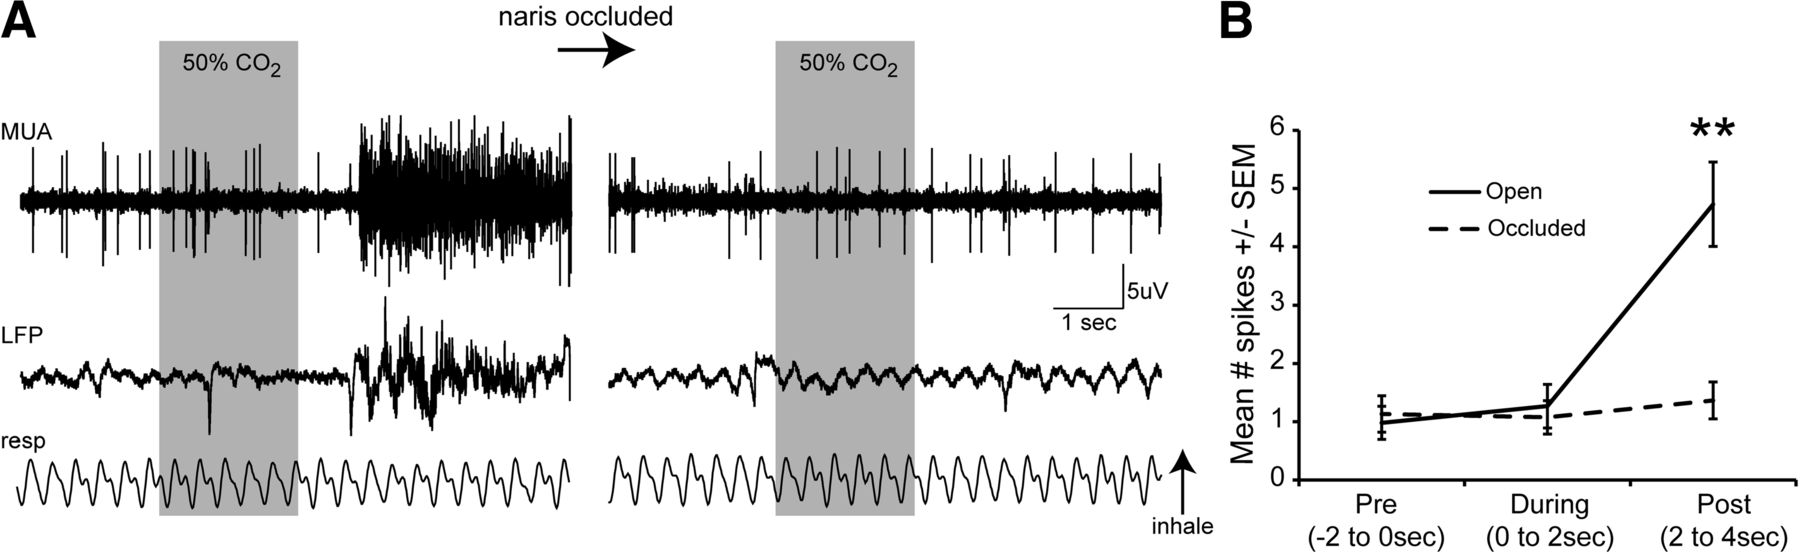 Encoding And Representation Of Intranasal Co2 In The Mouse Olfactory Multiple Feedback Bandpass Filter Download Figure